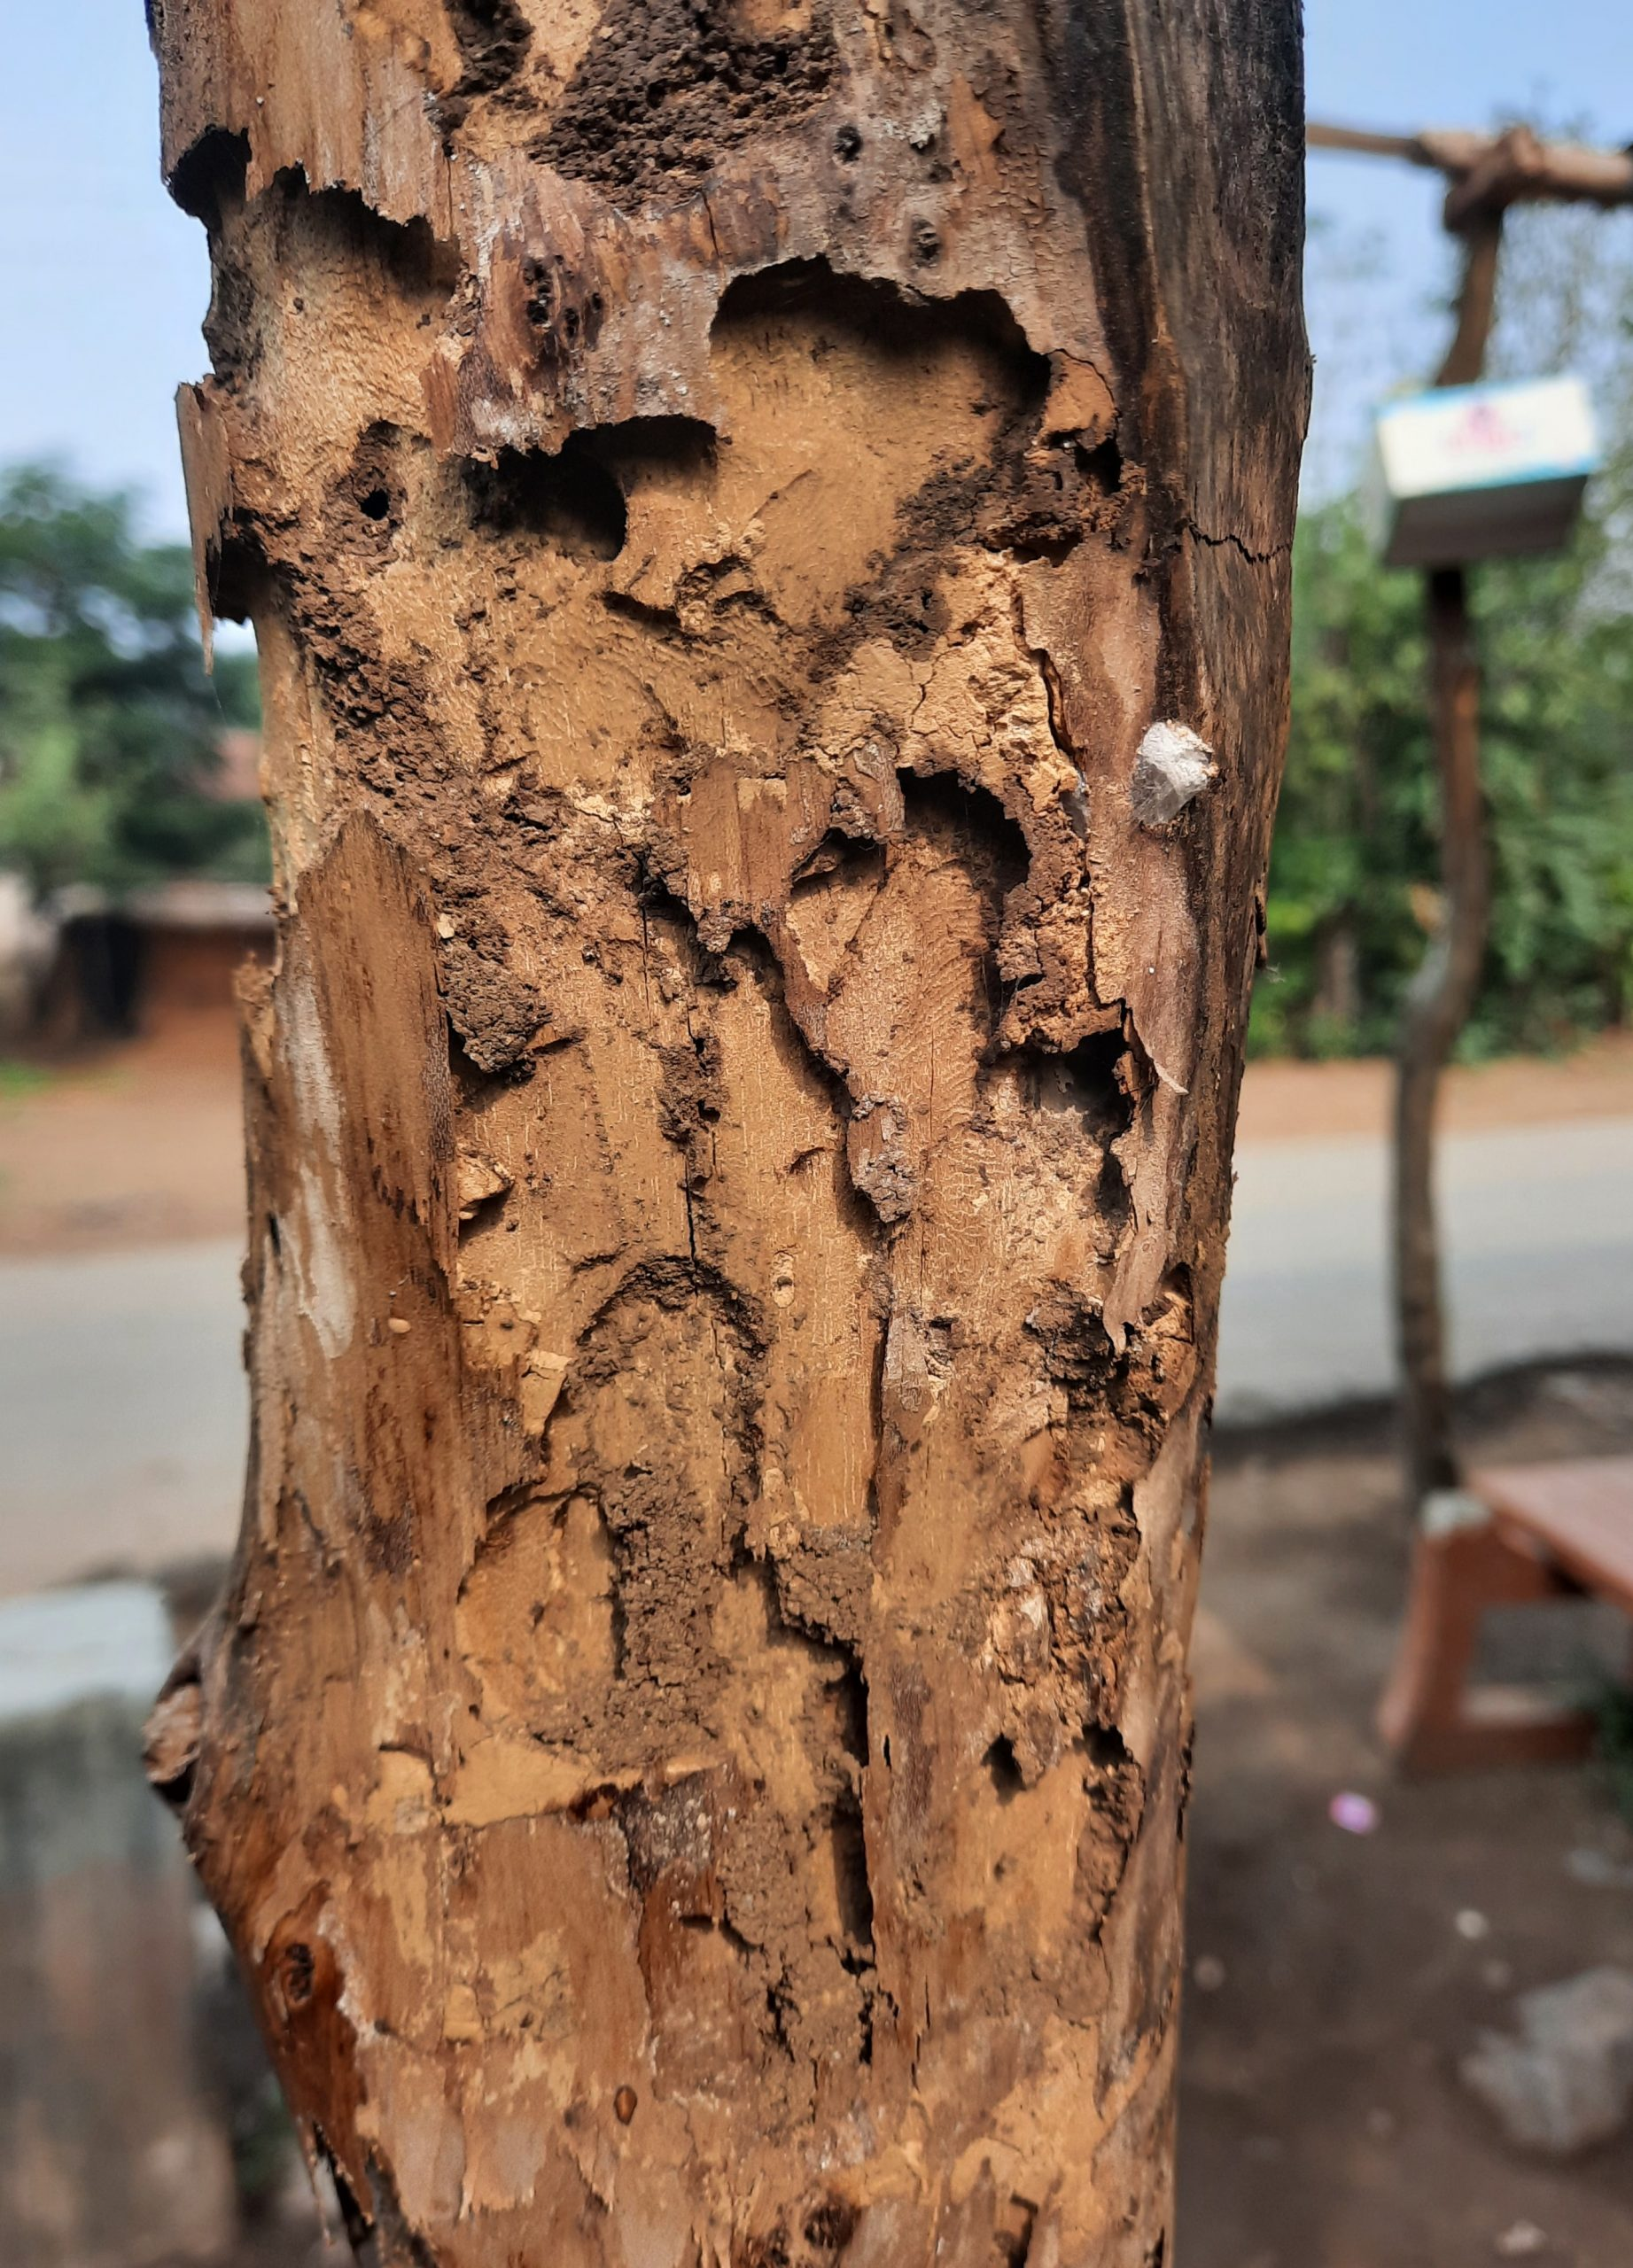 A tree trunk eaten boy insect